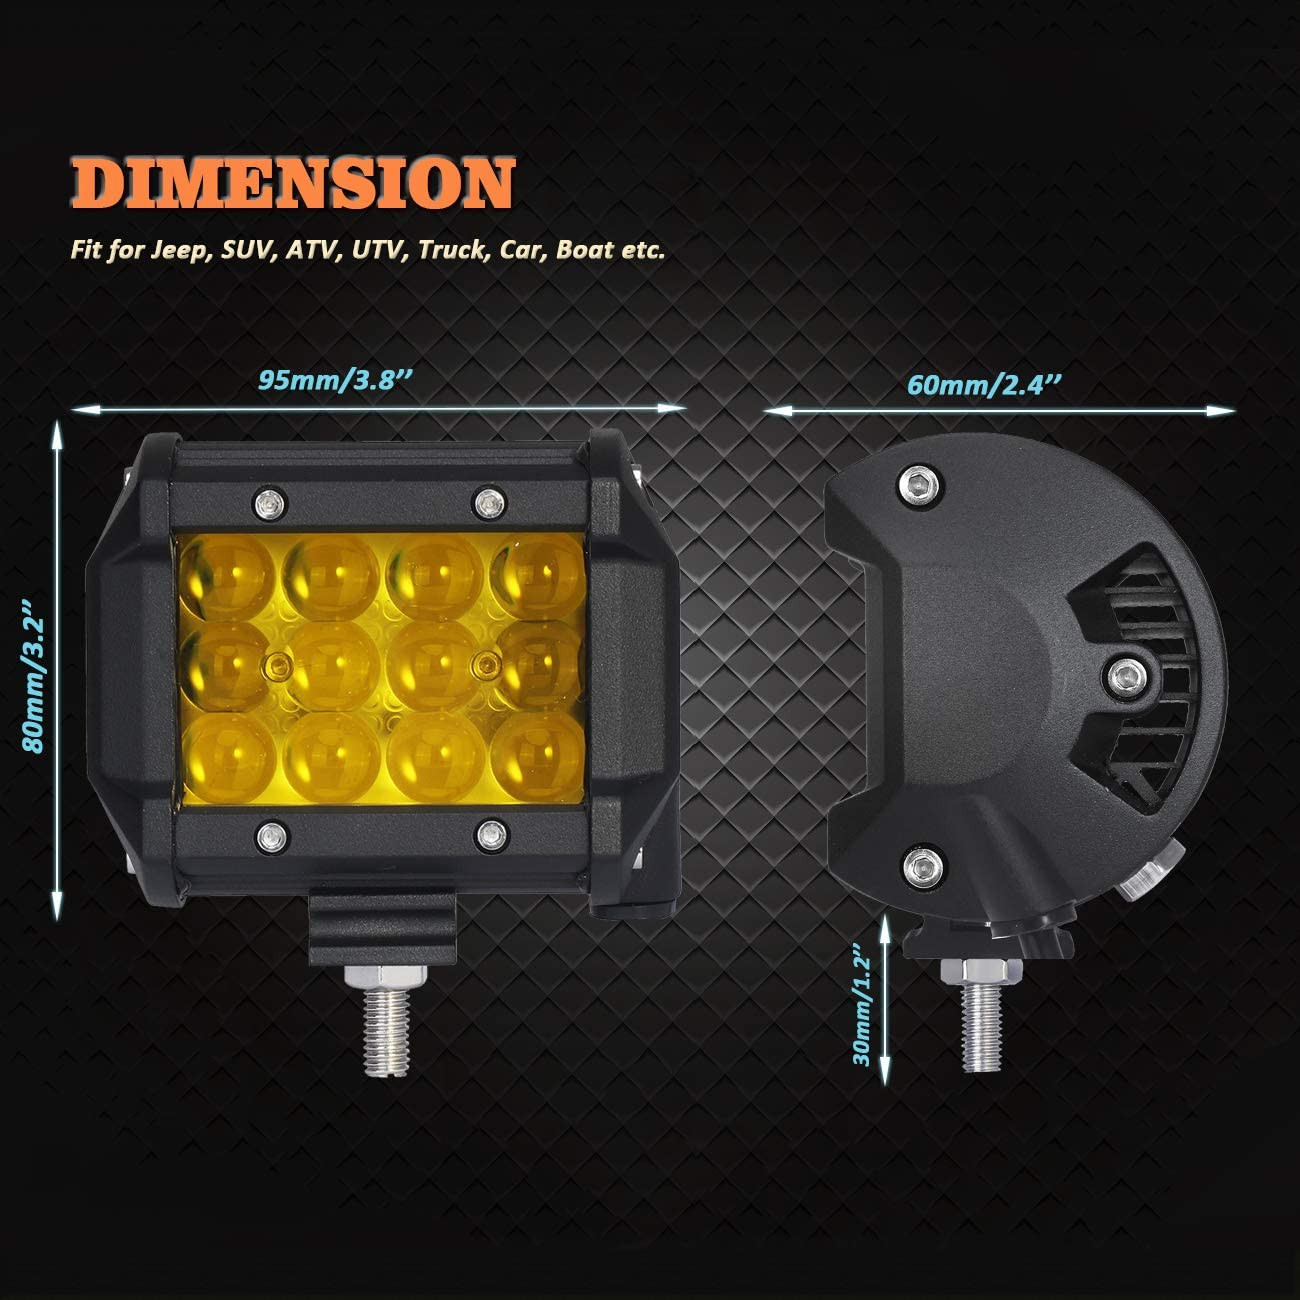 4 Inch 18W Truck Lights Off Road Light Bar with 4D Lens 12v Led Driving Pod Light Bars for SUV Jeep Boats,etc pack of 2